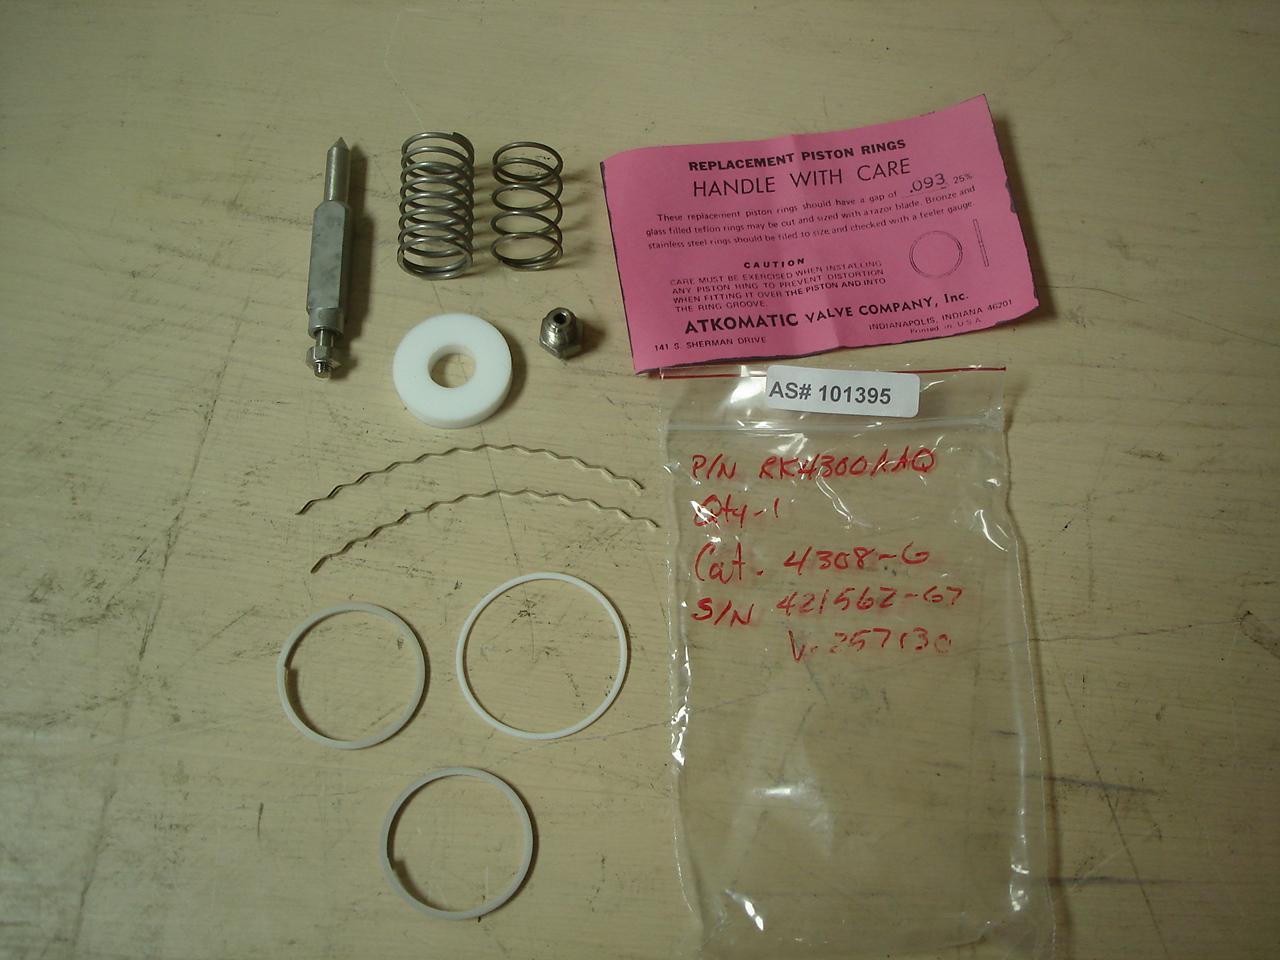 ATKOMATIC Replacements Parts